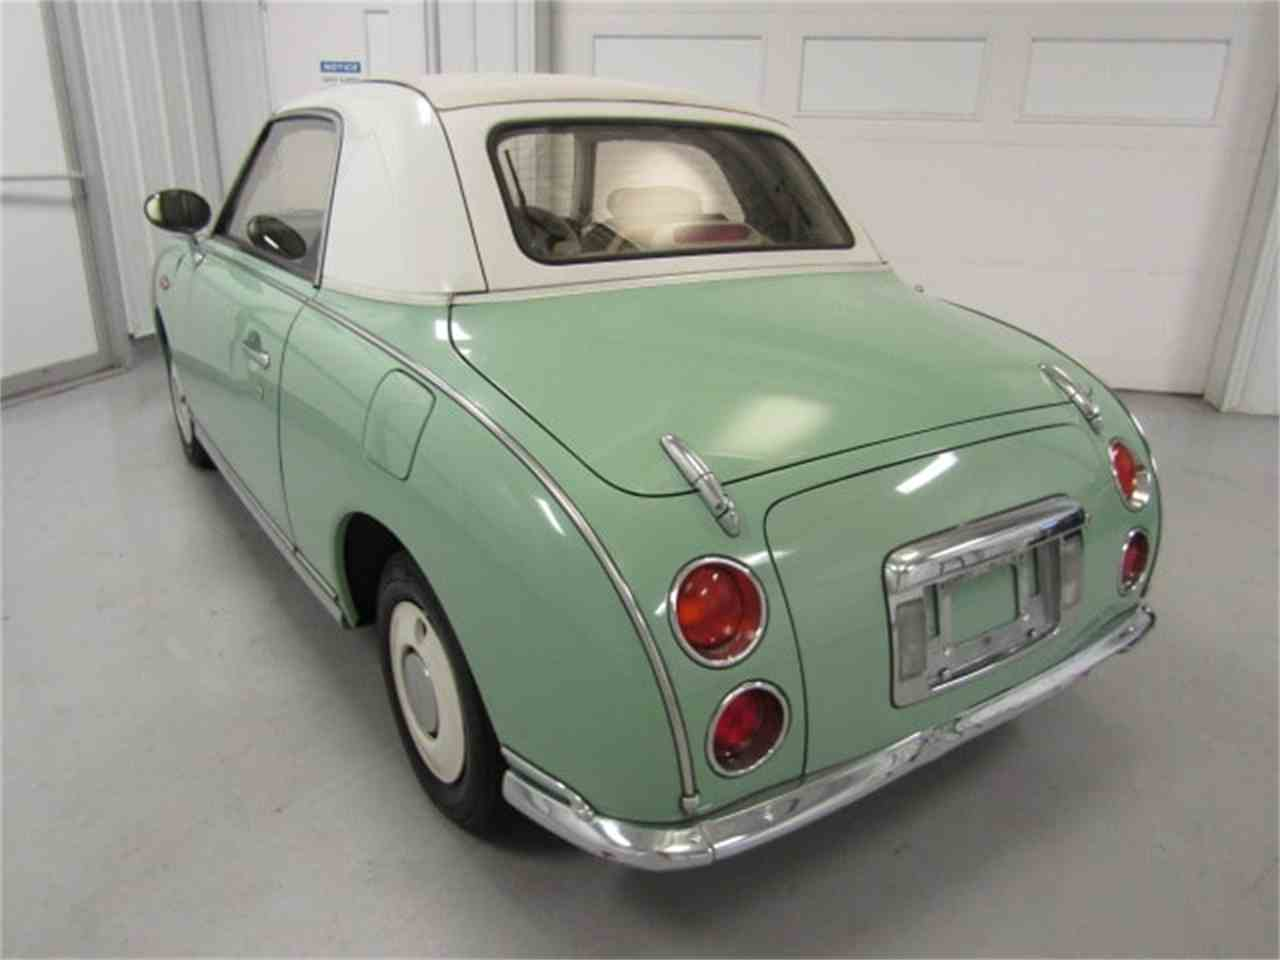 Large Picture of 1991 Nissan Figaro located in Christiansburg Virginia - $12,721.00 - JL8A